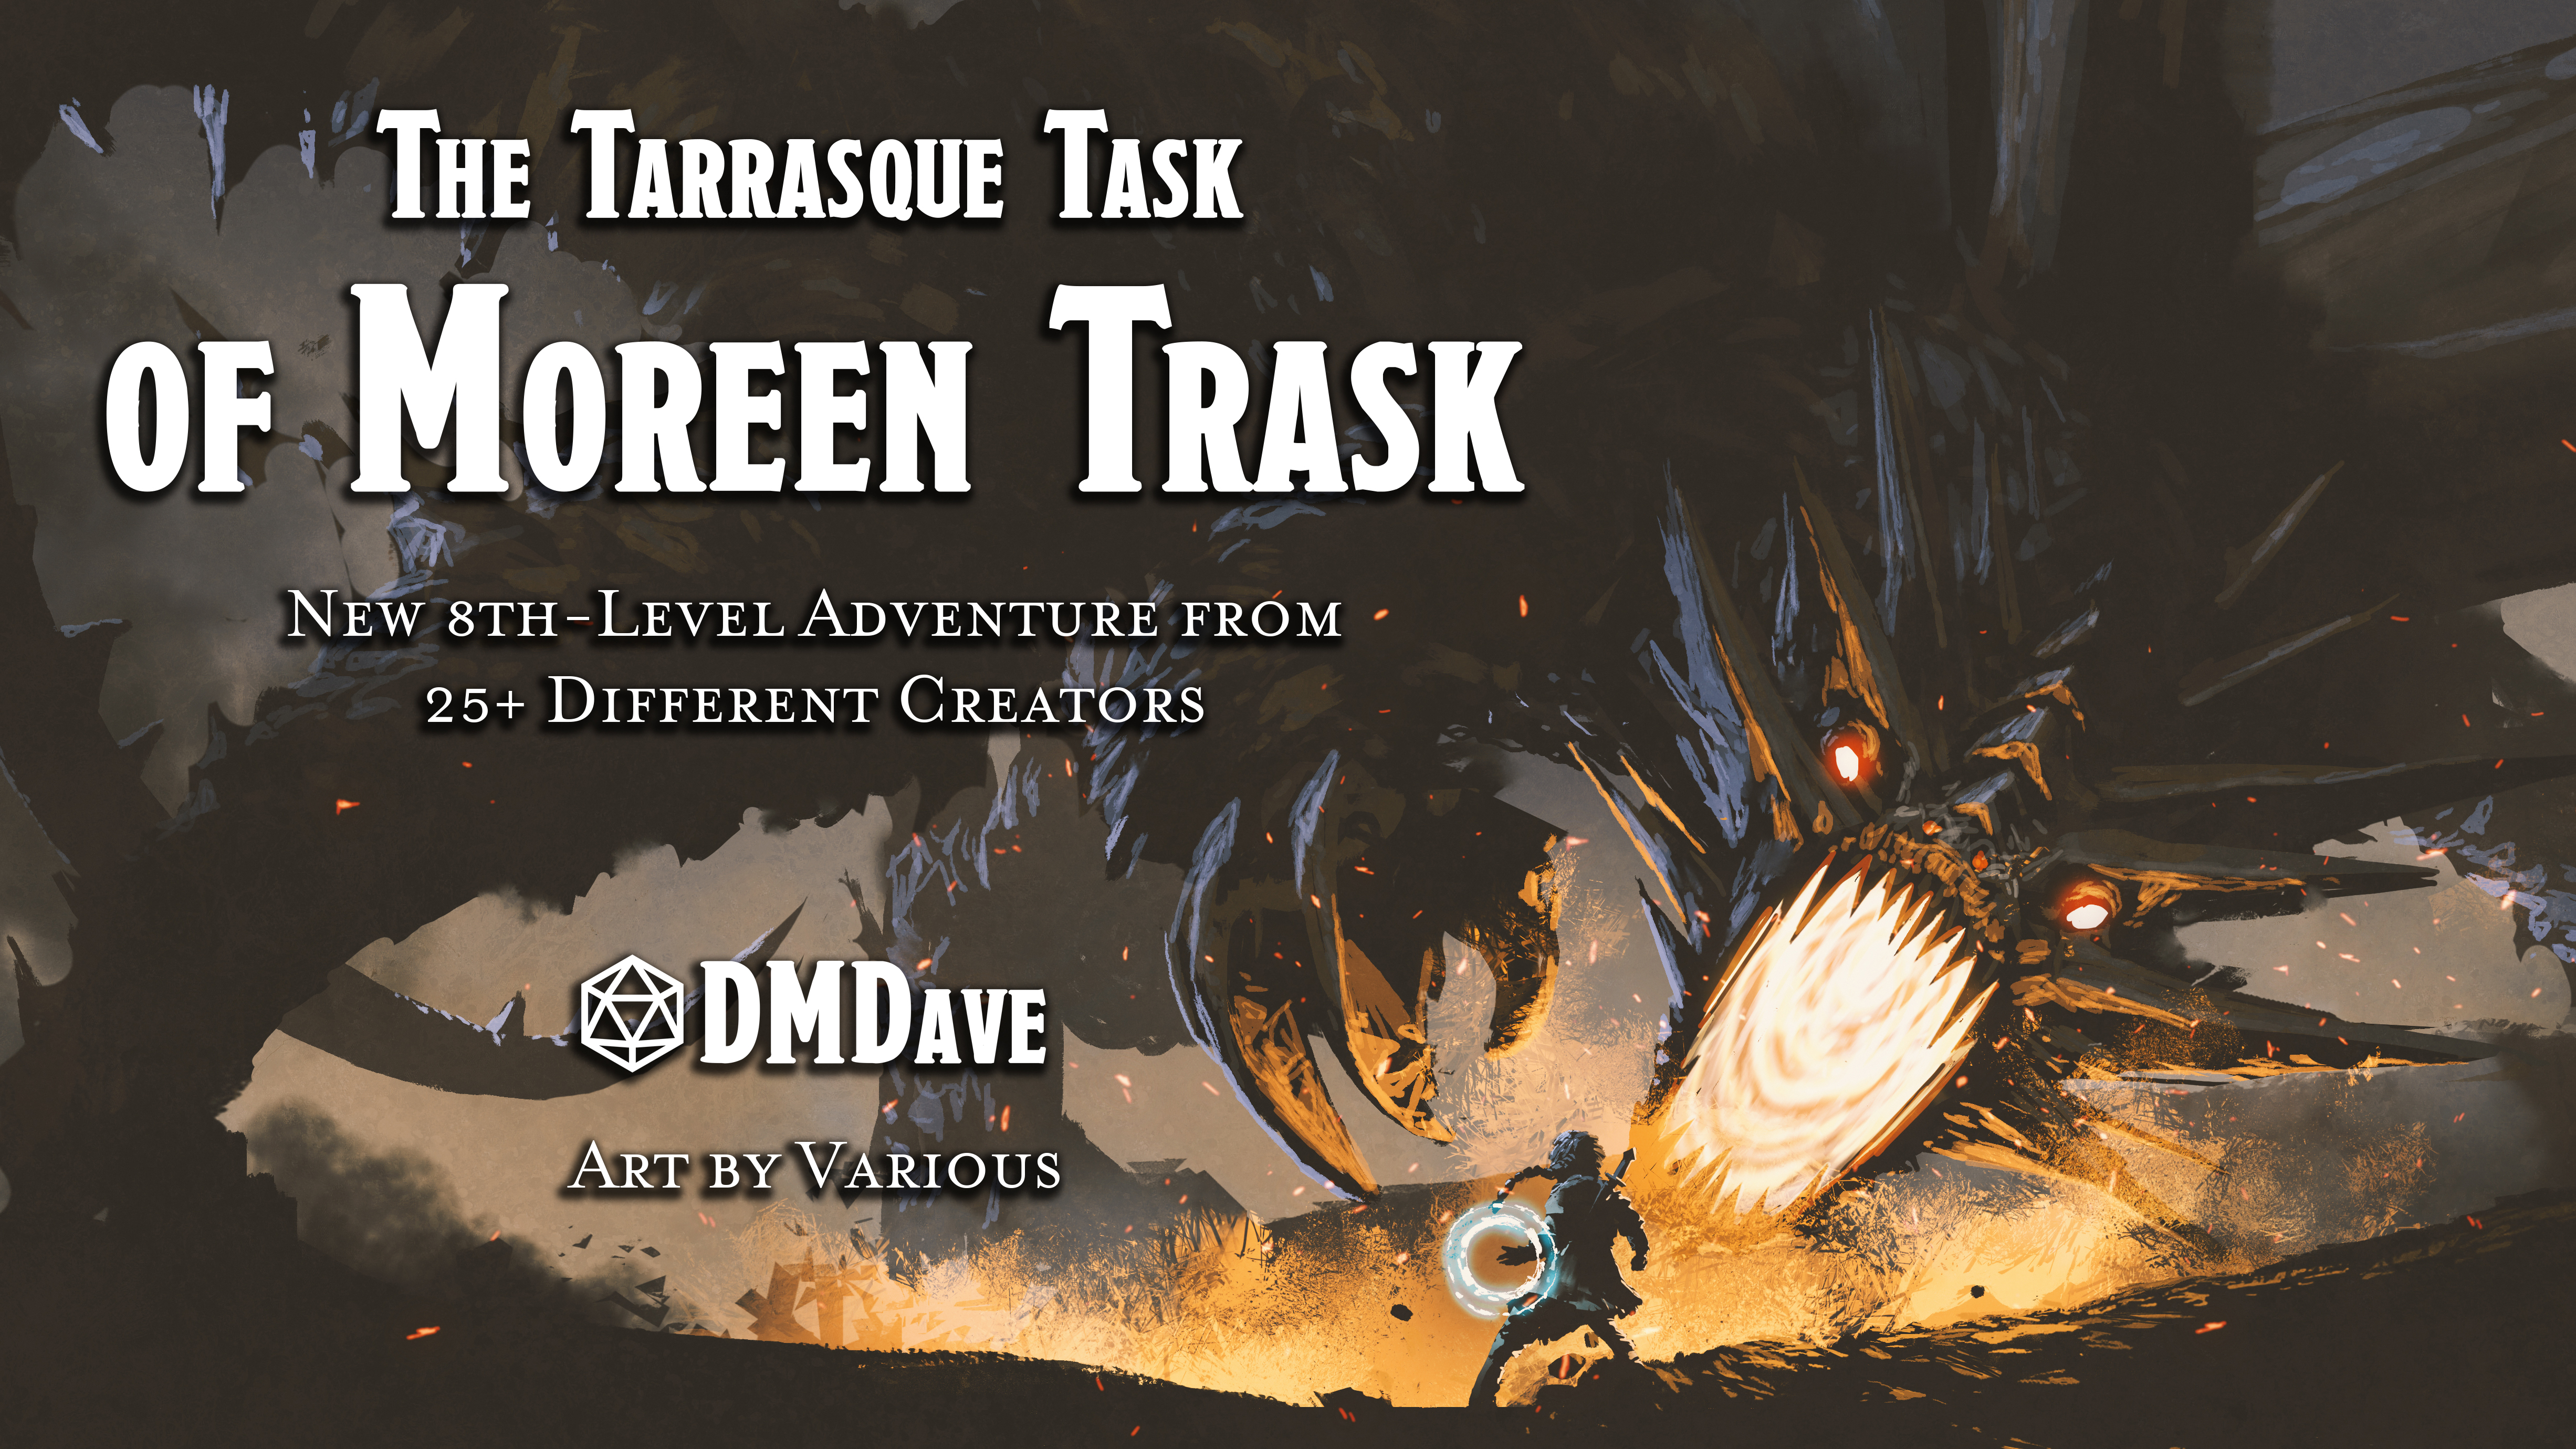 The Tarrasque Task of Moreen Trask | New 8th-Level Adventure for Fifth Edition